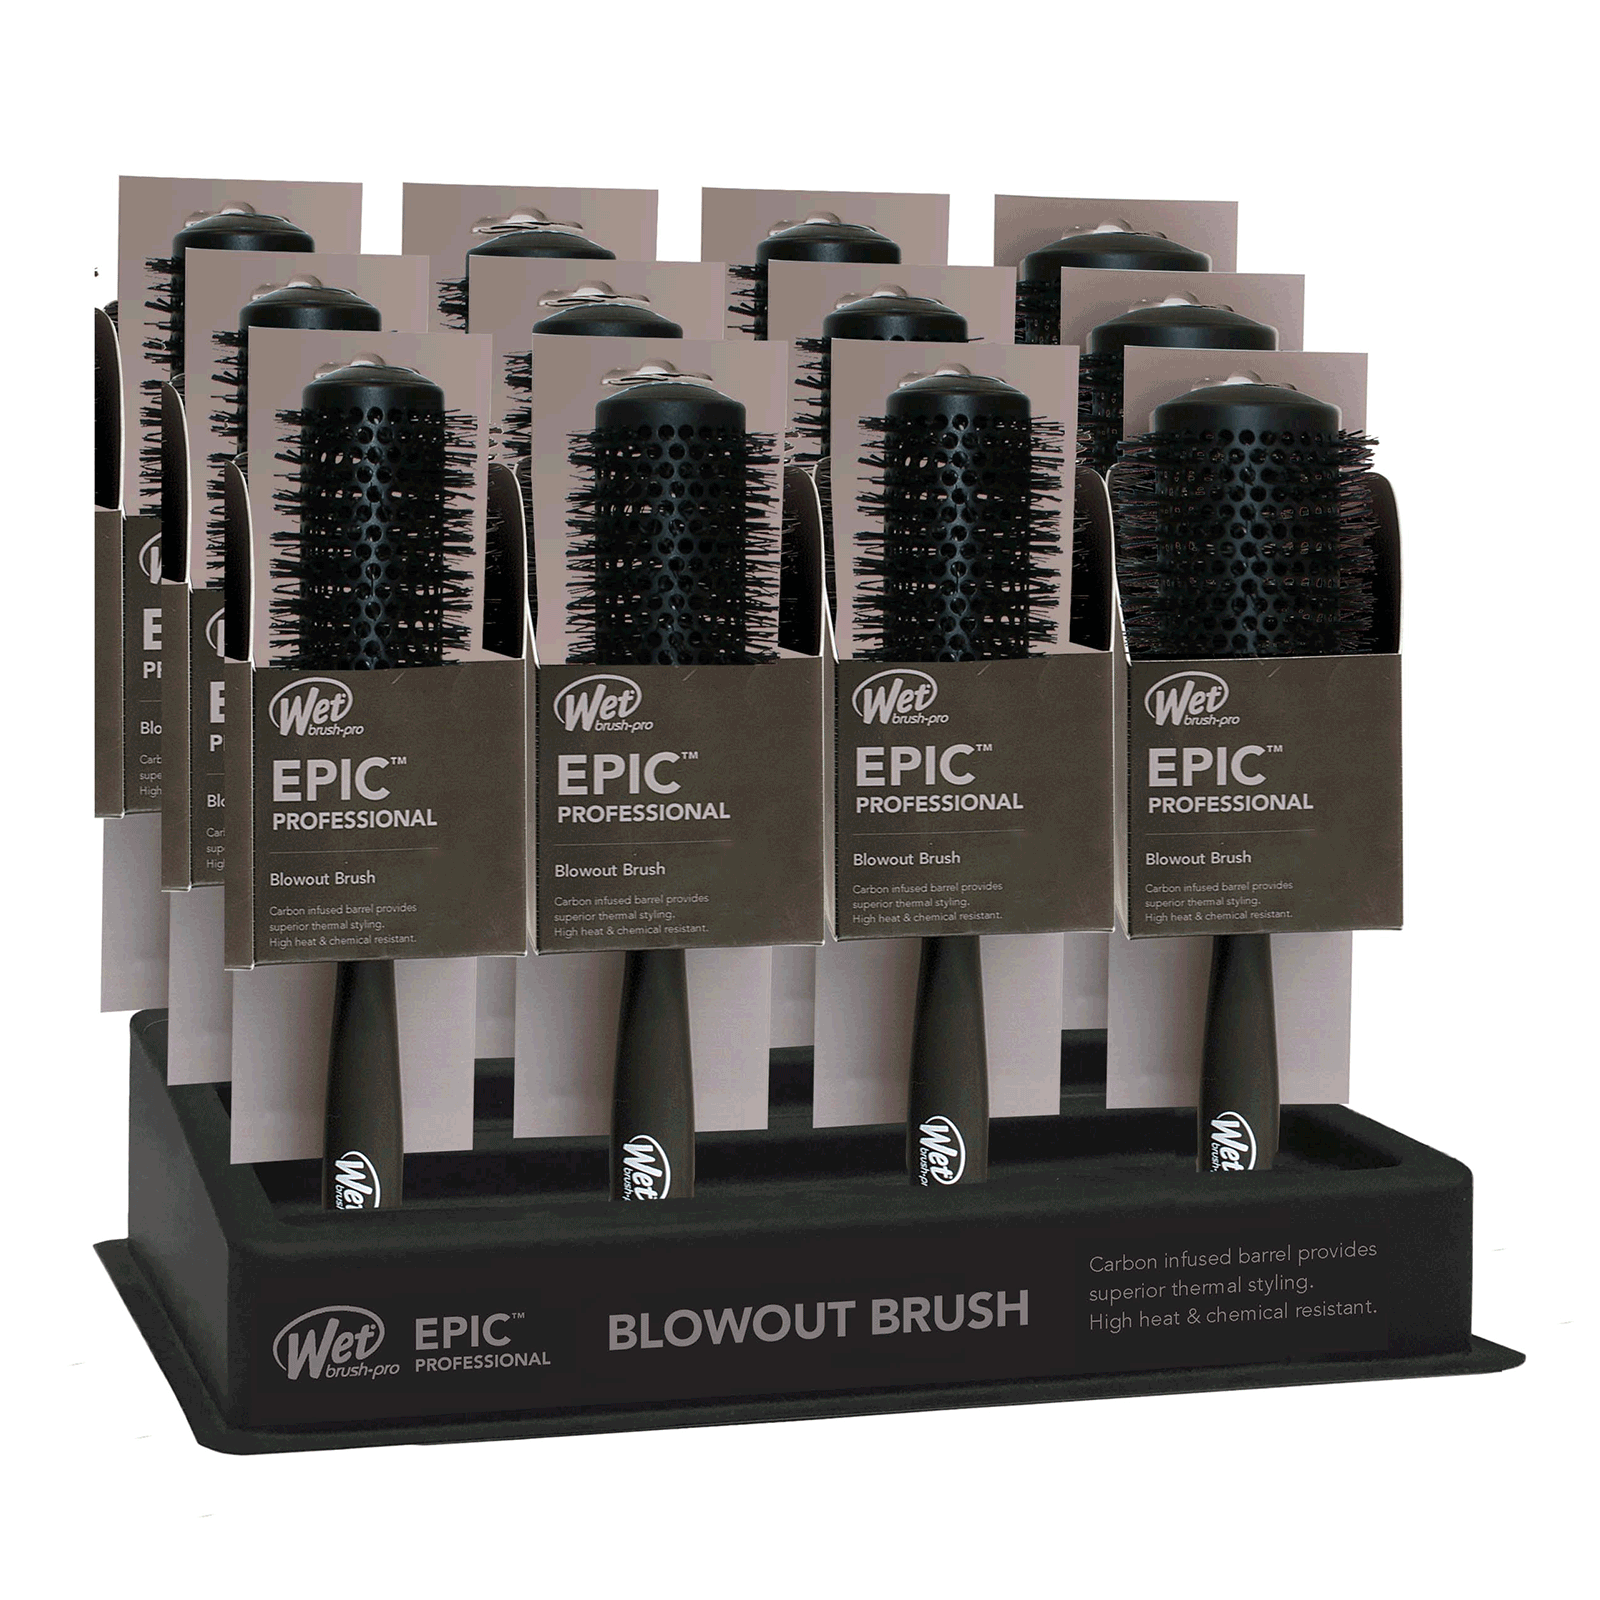 Epic Blowout Round Brush - 12 piece display